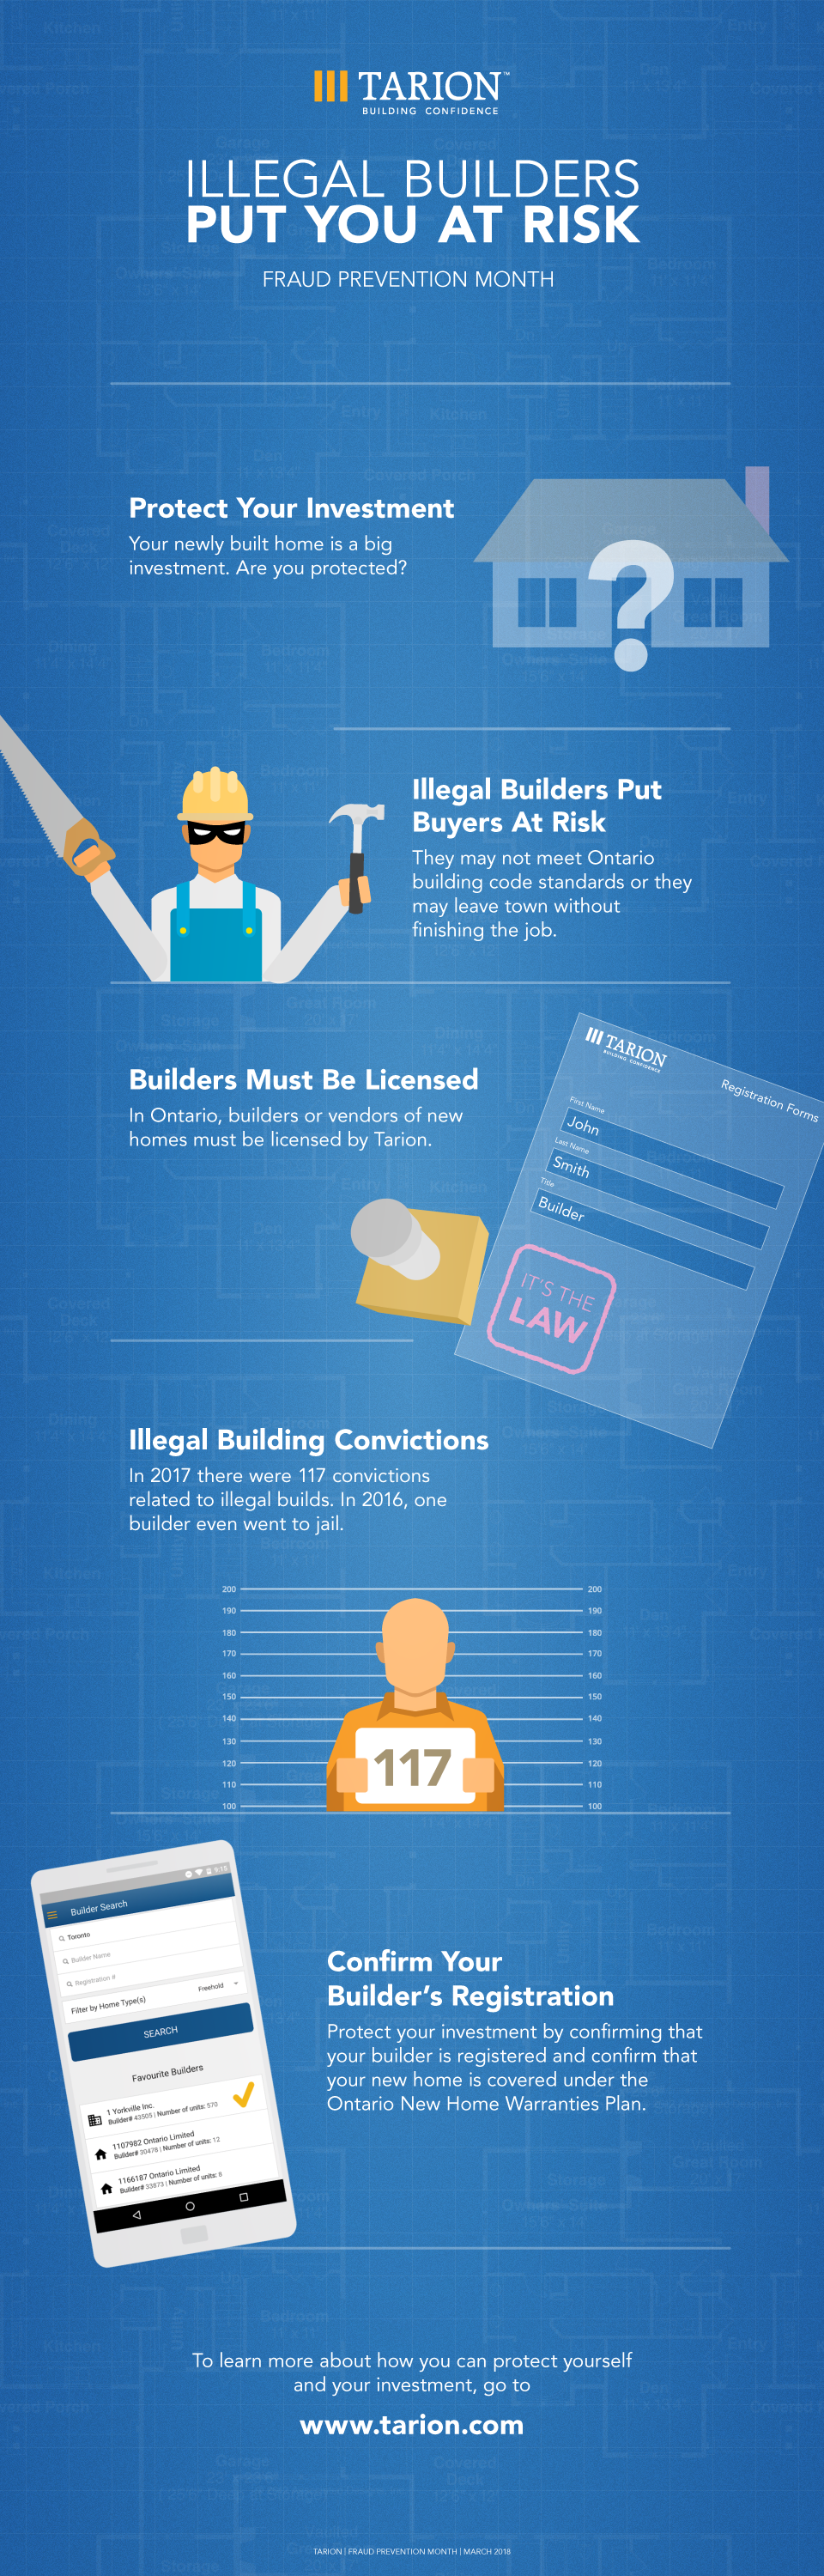 Tarion Fraud Prevention Month Infographic